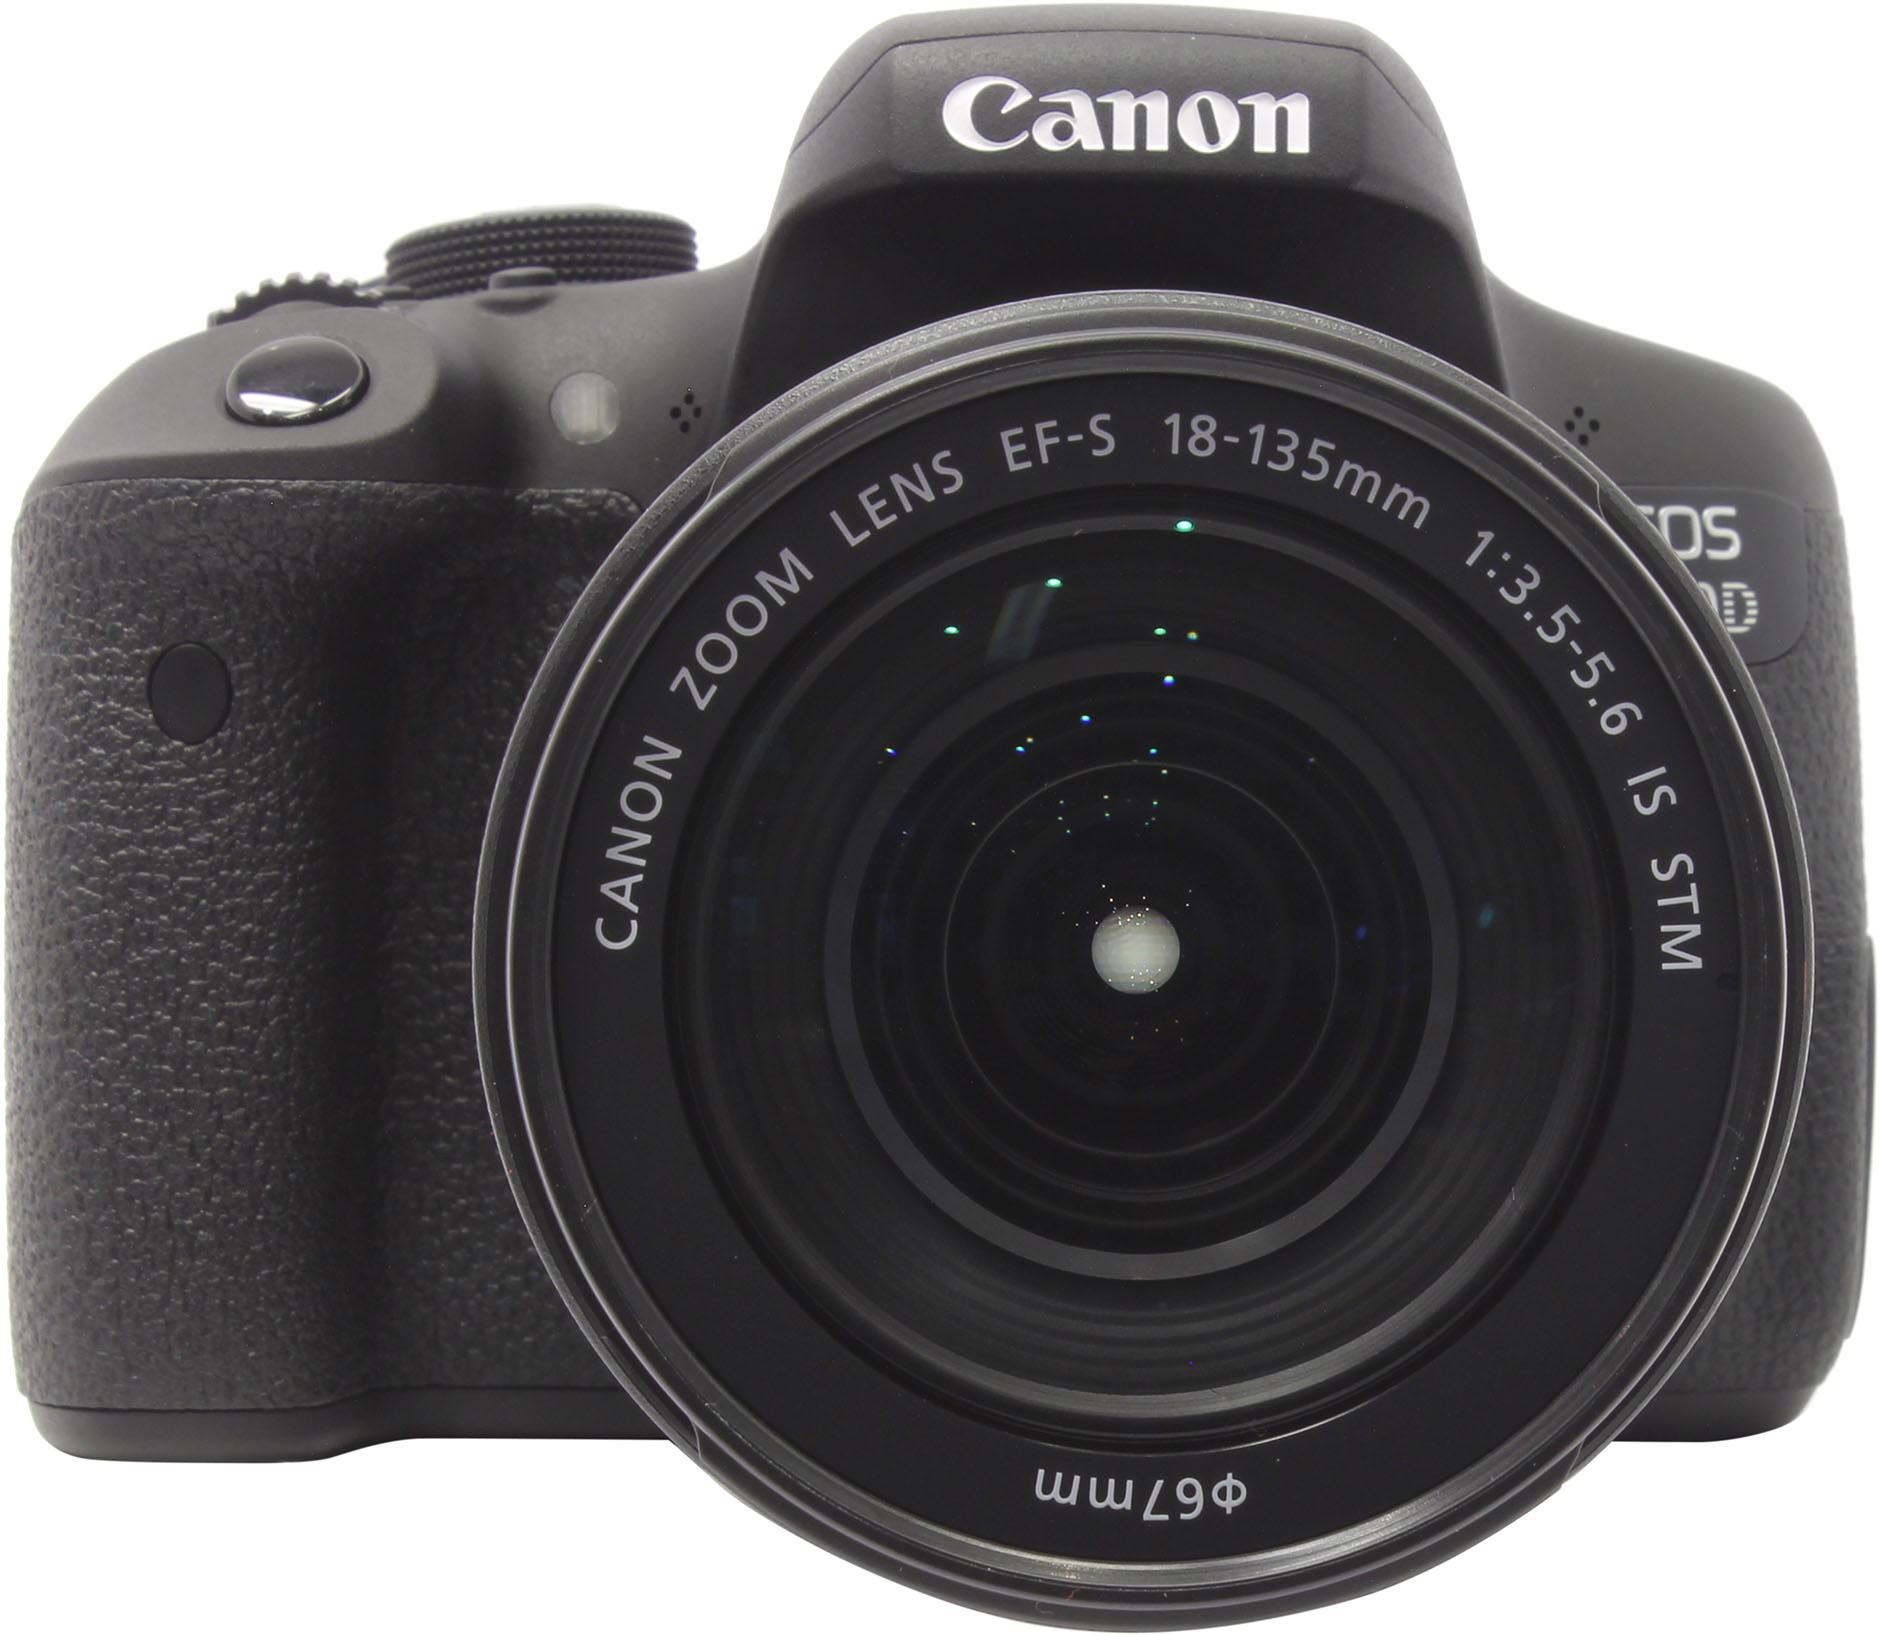 Canon Eos 750d Ef S 18 135 Is Stm Kit 760d 135mm F 35 56 Wifi